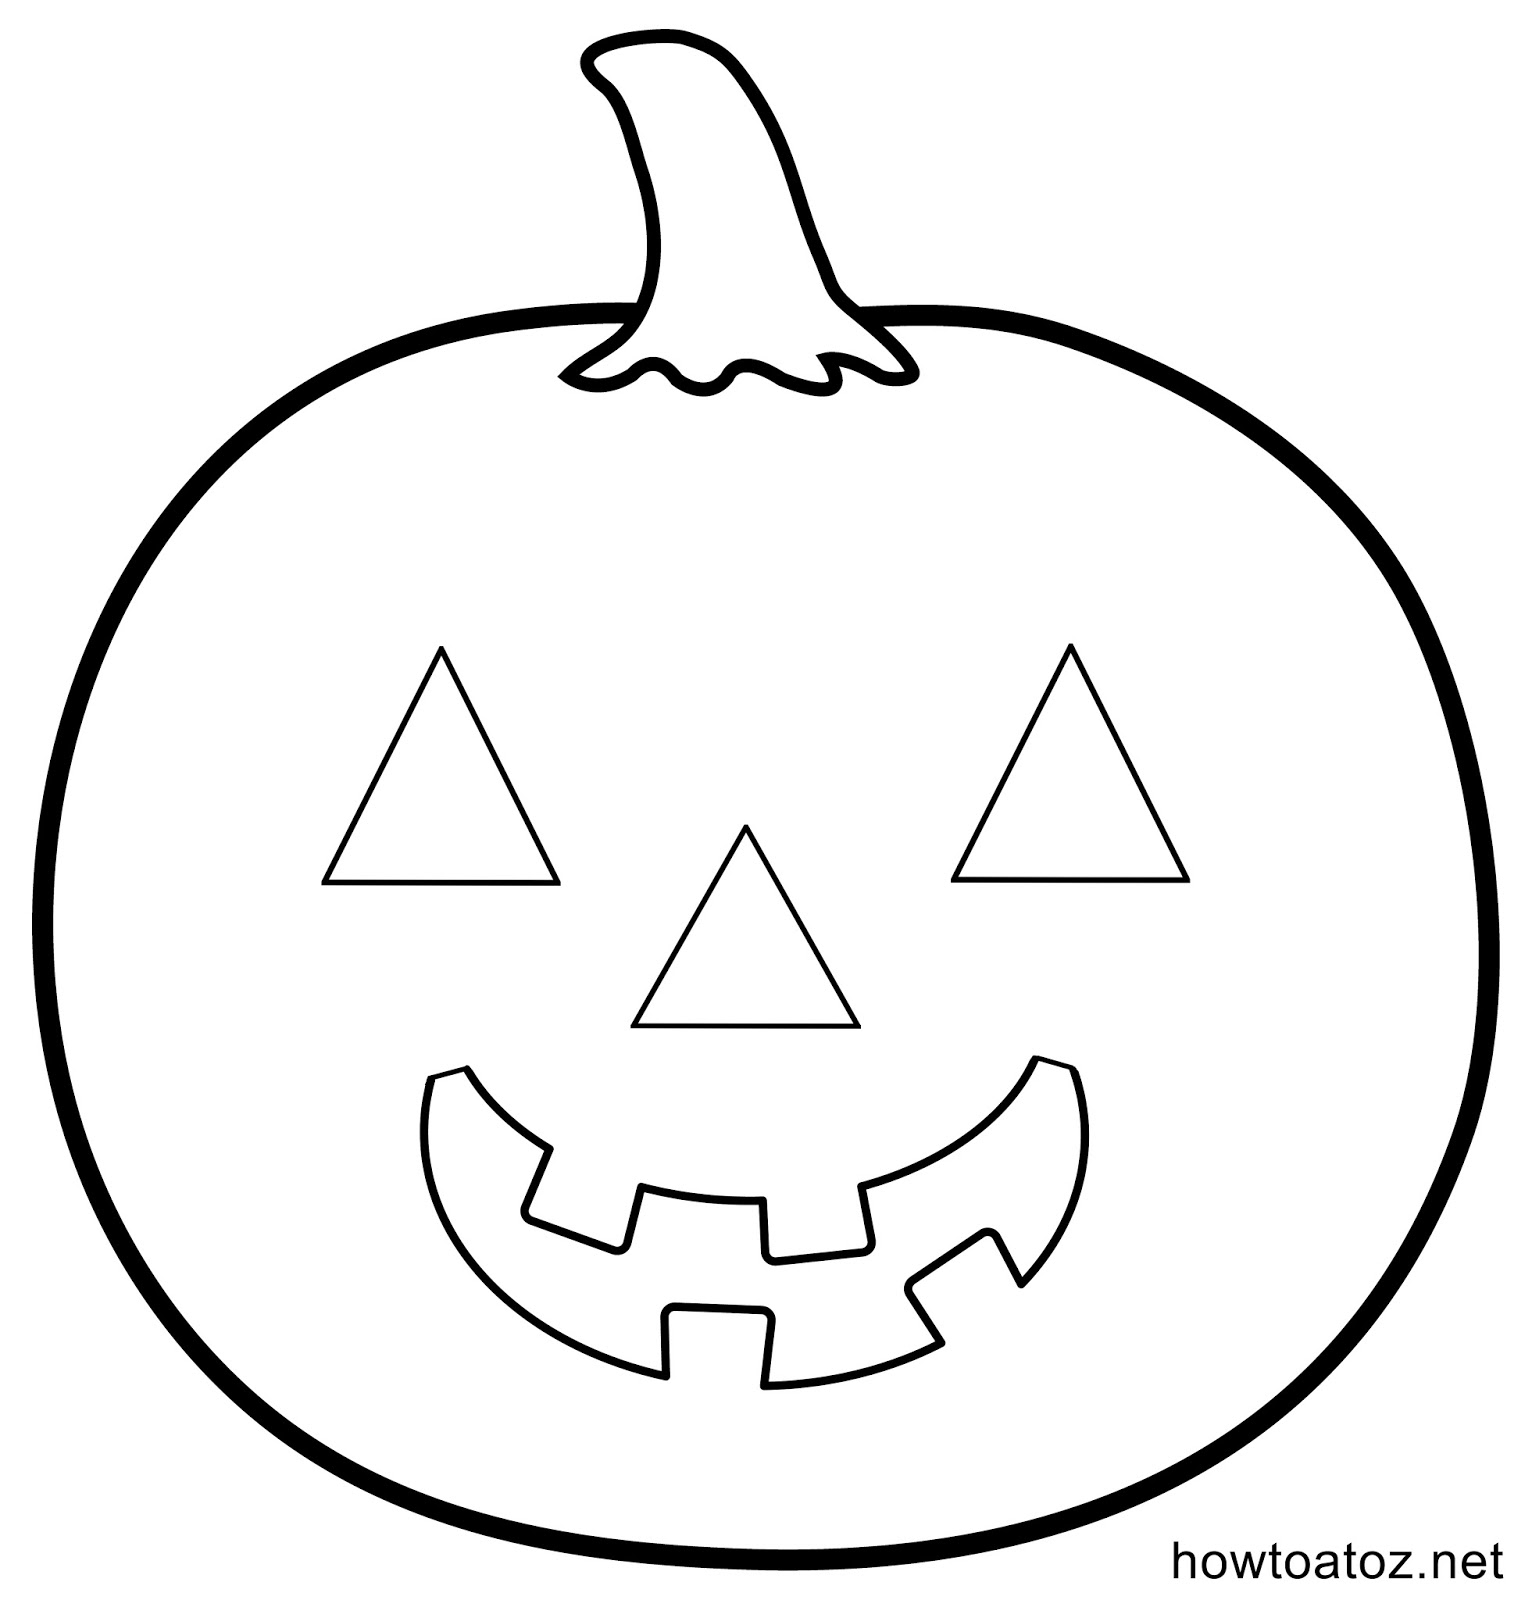 Pumpkin Drawing Template At Getdrawings